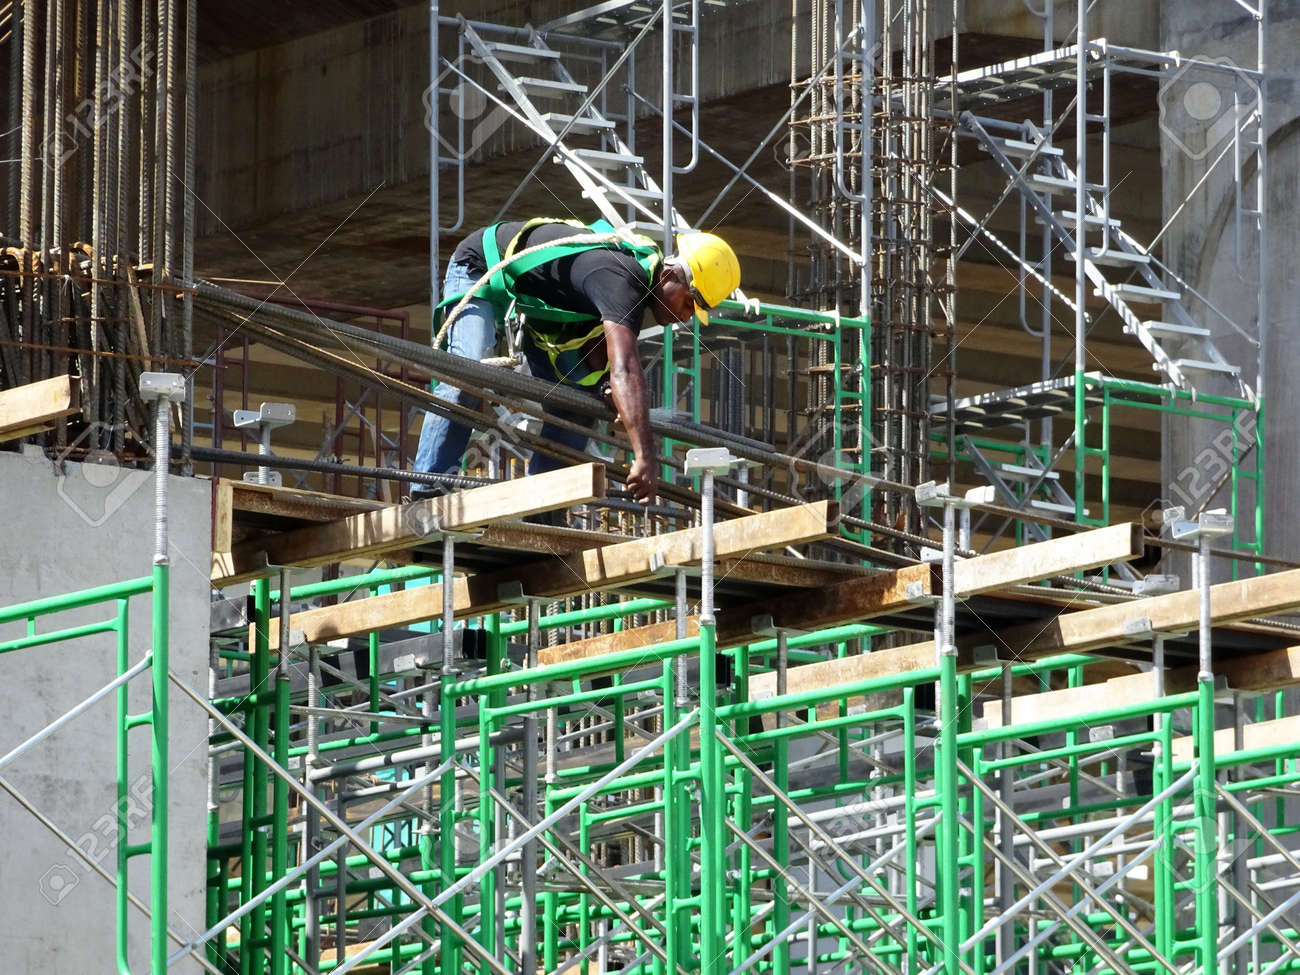 MALACCA, MALAYSIA -MARCH 2, 2020: Construction workers working at height install reinforcement bars at the construction site. They are supplied with harnesses and other safety equipment. - 165156374